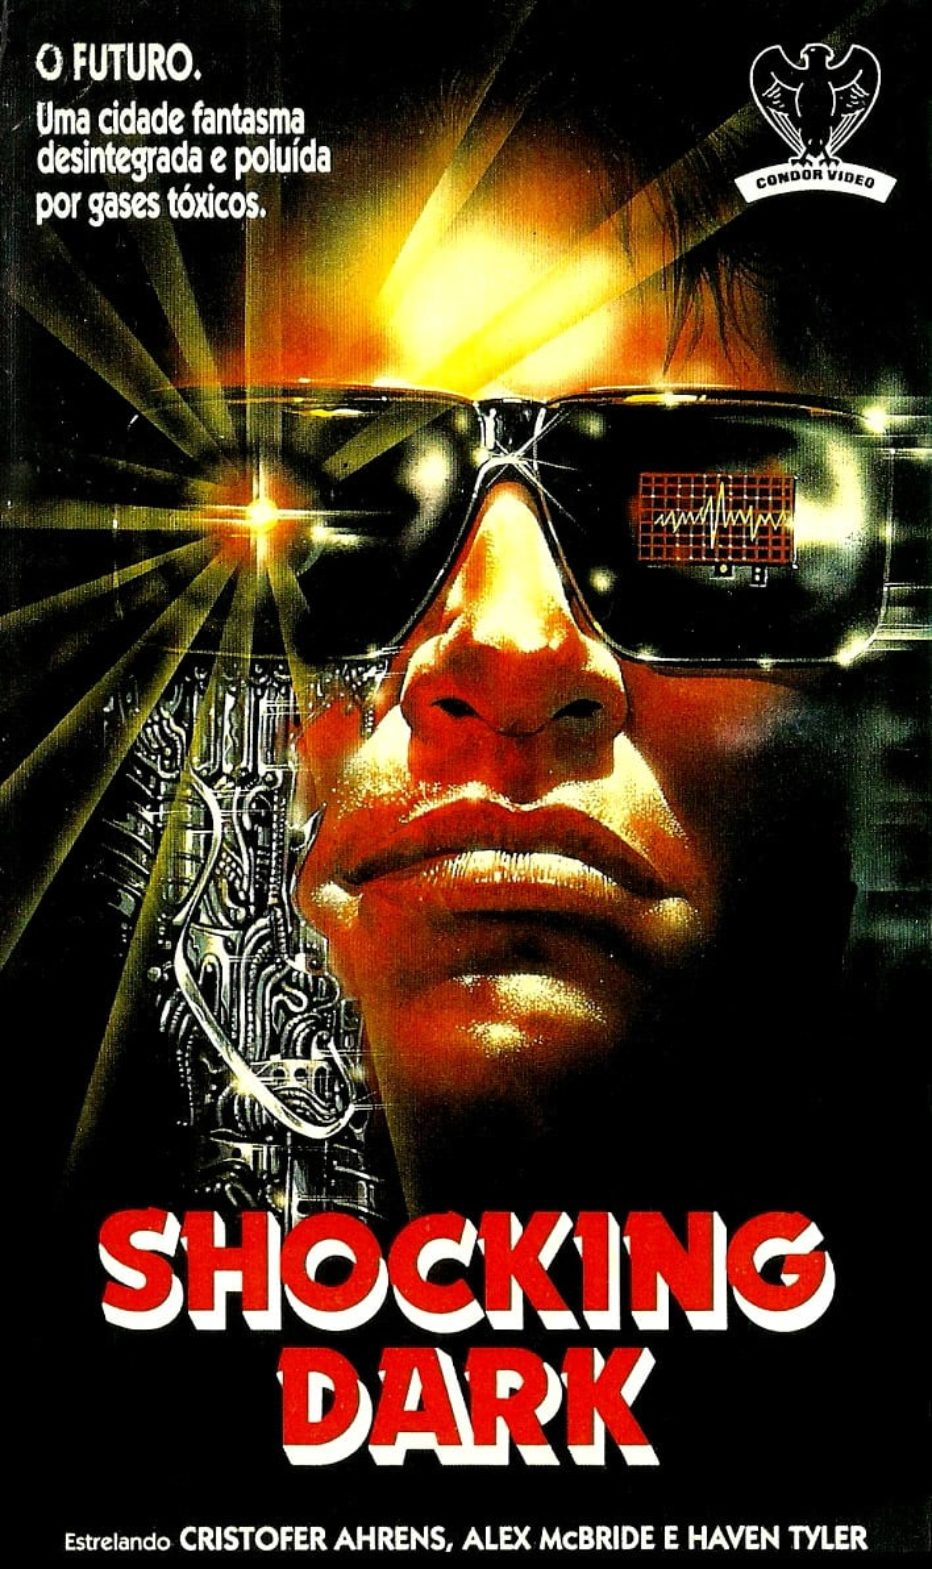 Terminator 2: Shocking dark